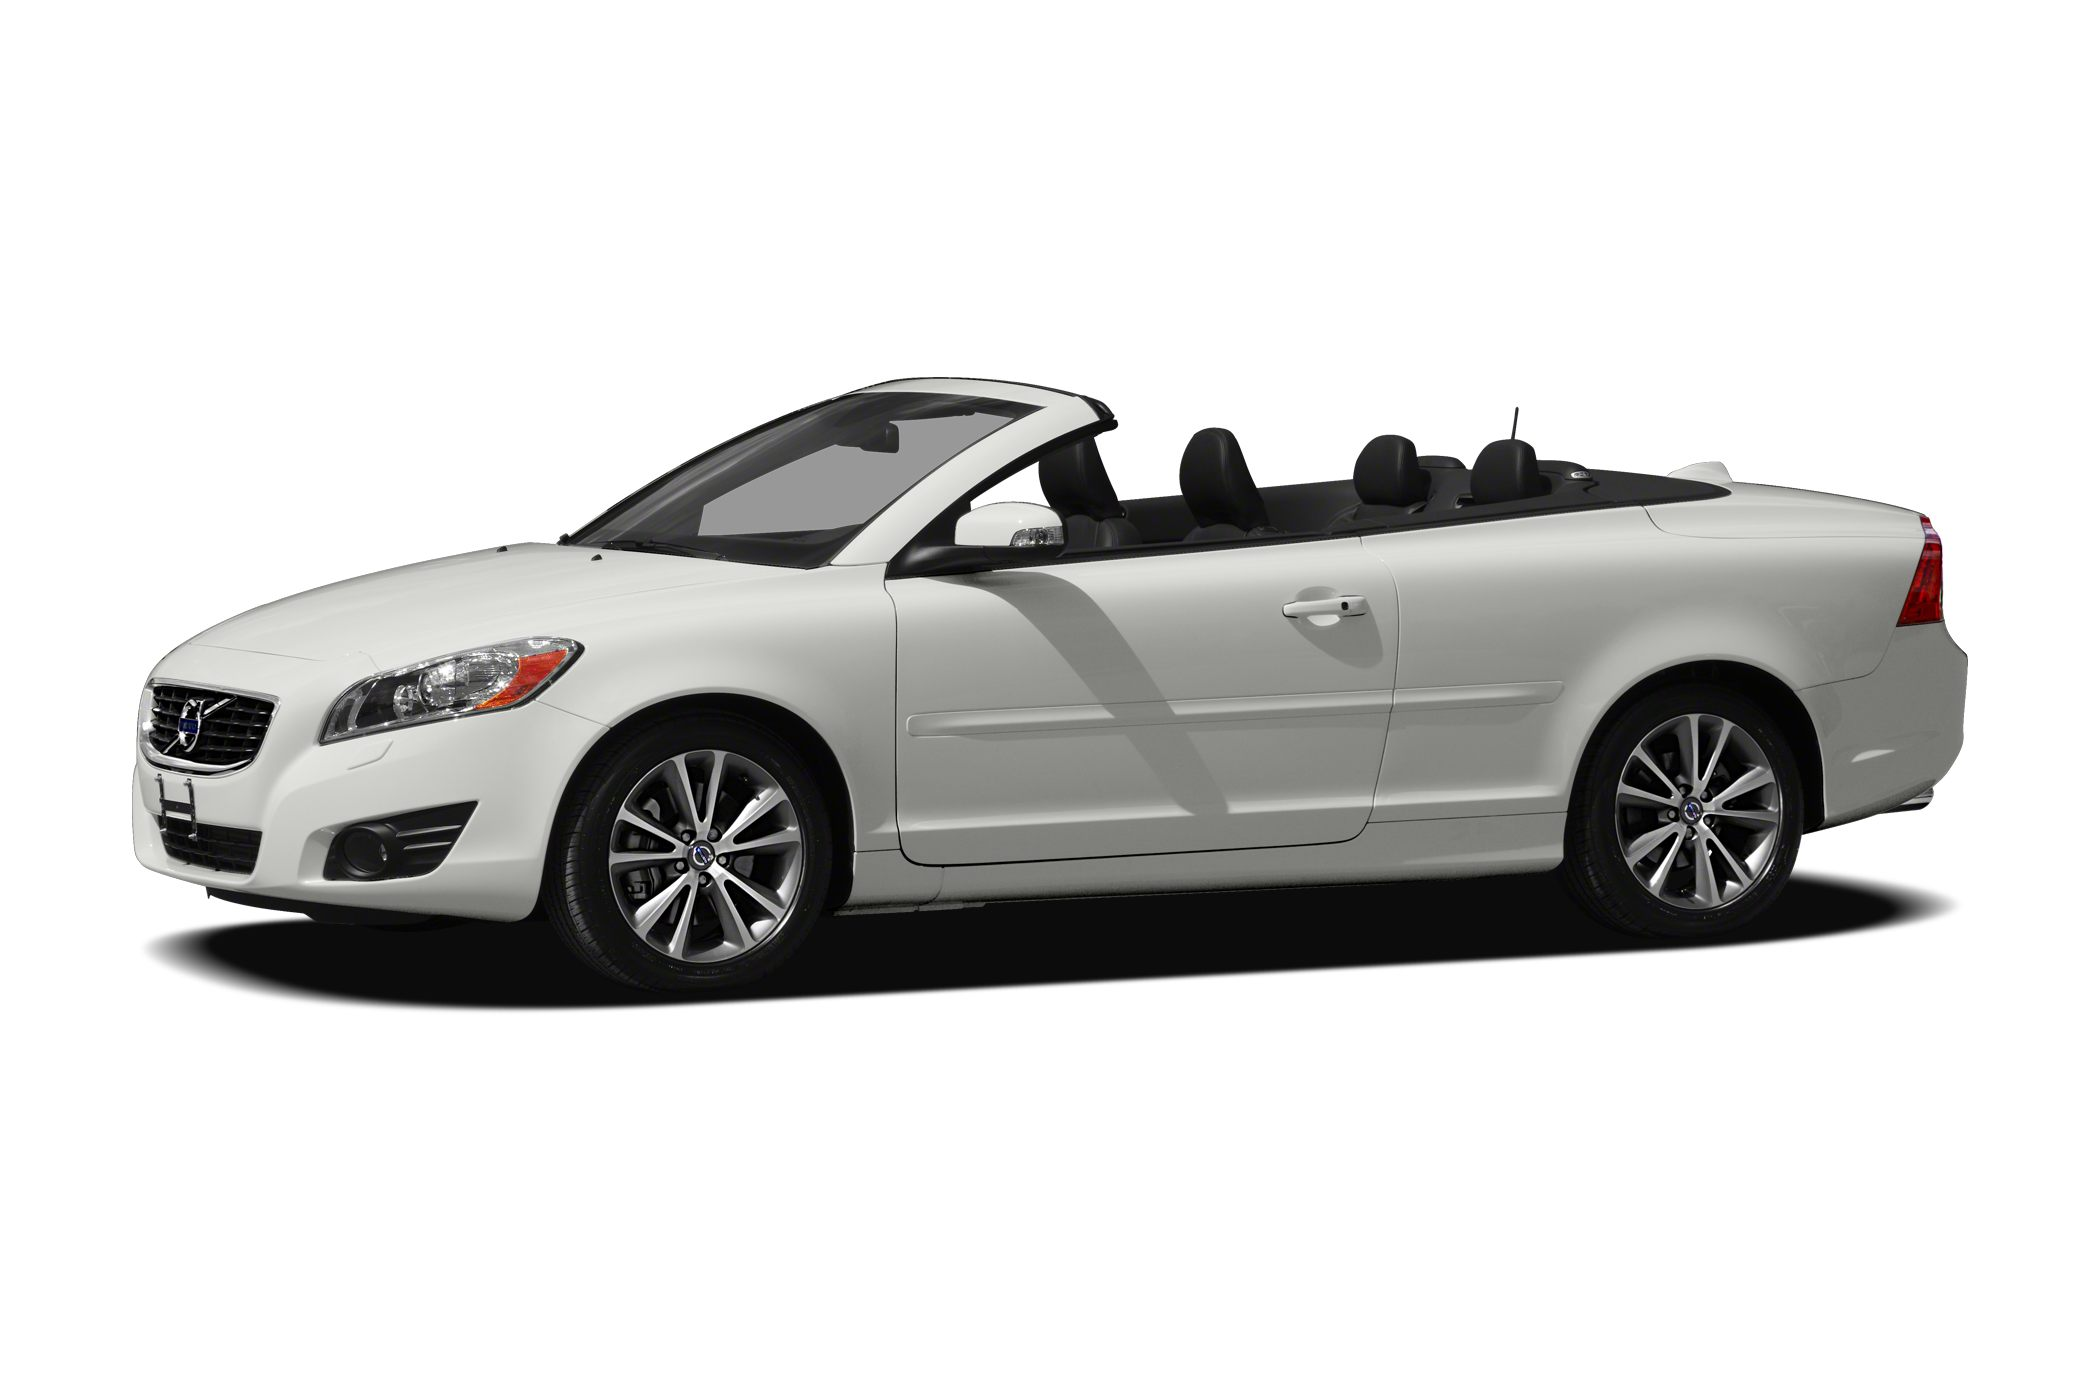 2012 Volvo C70 T5 Platinum Convertible for sale in Marietta for $28,990 with 39,493 miles